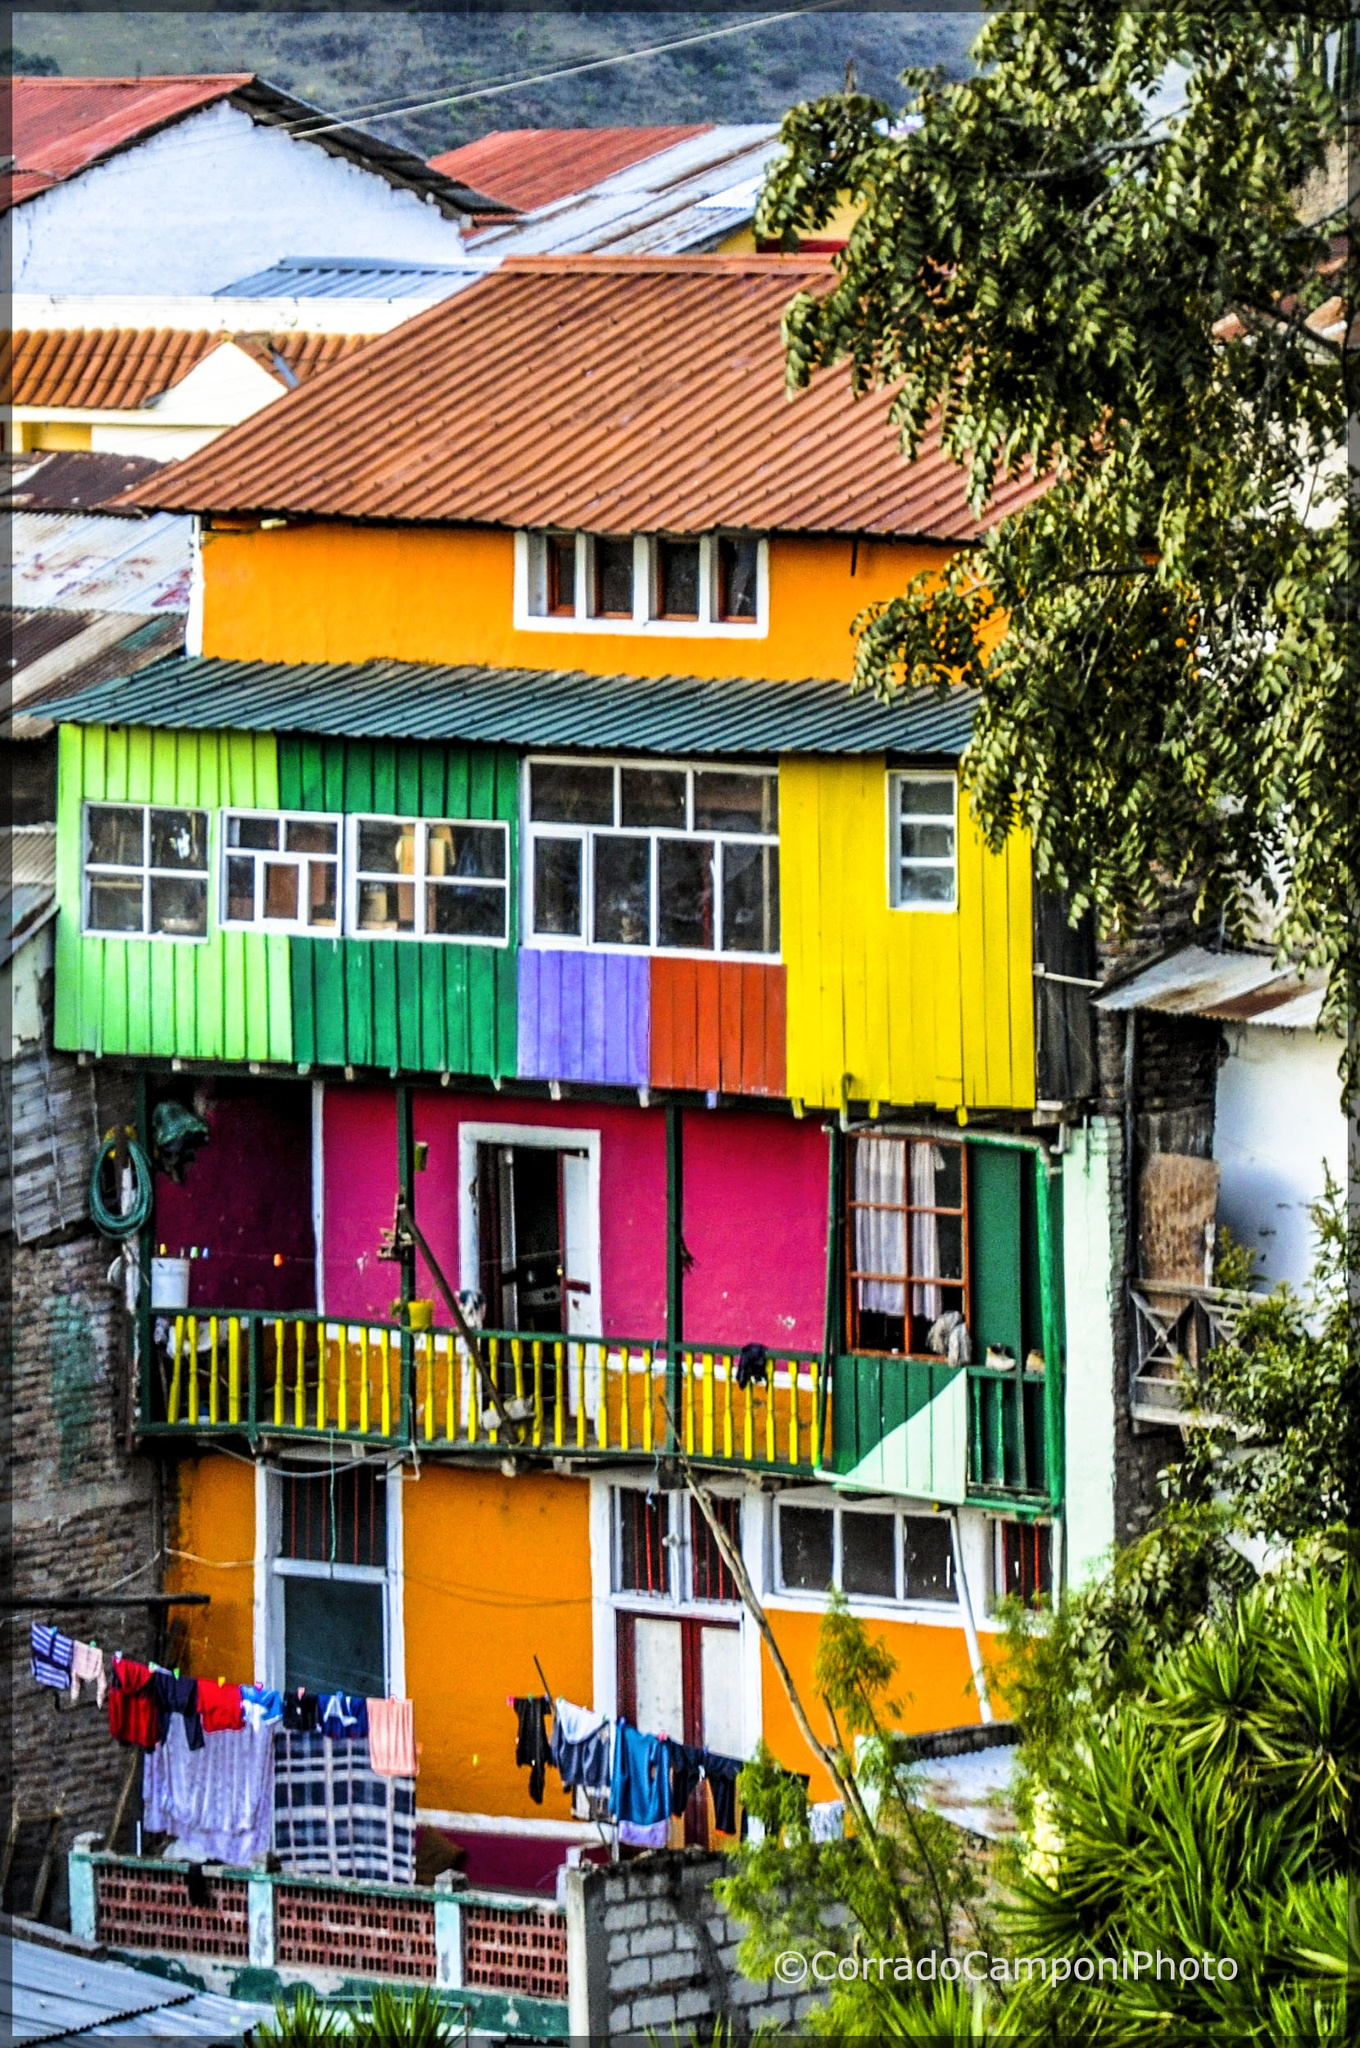 The house of thousand colors by corradocamponiphoto